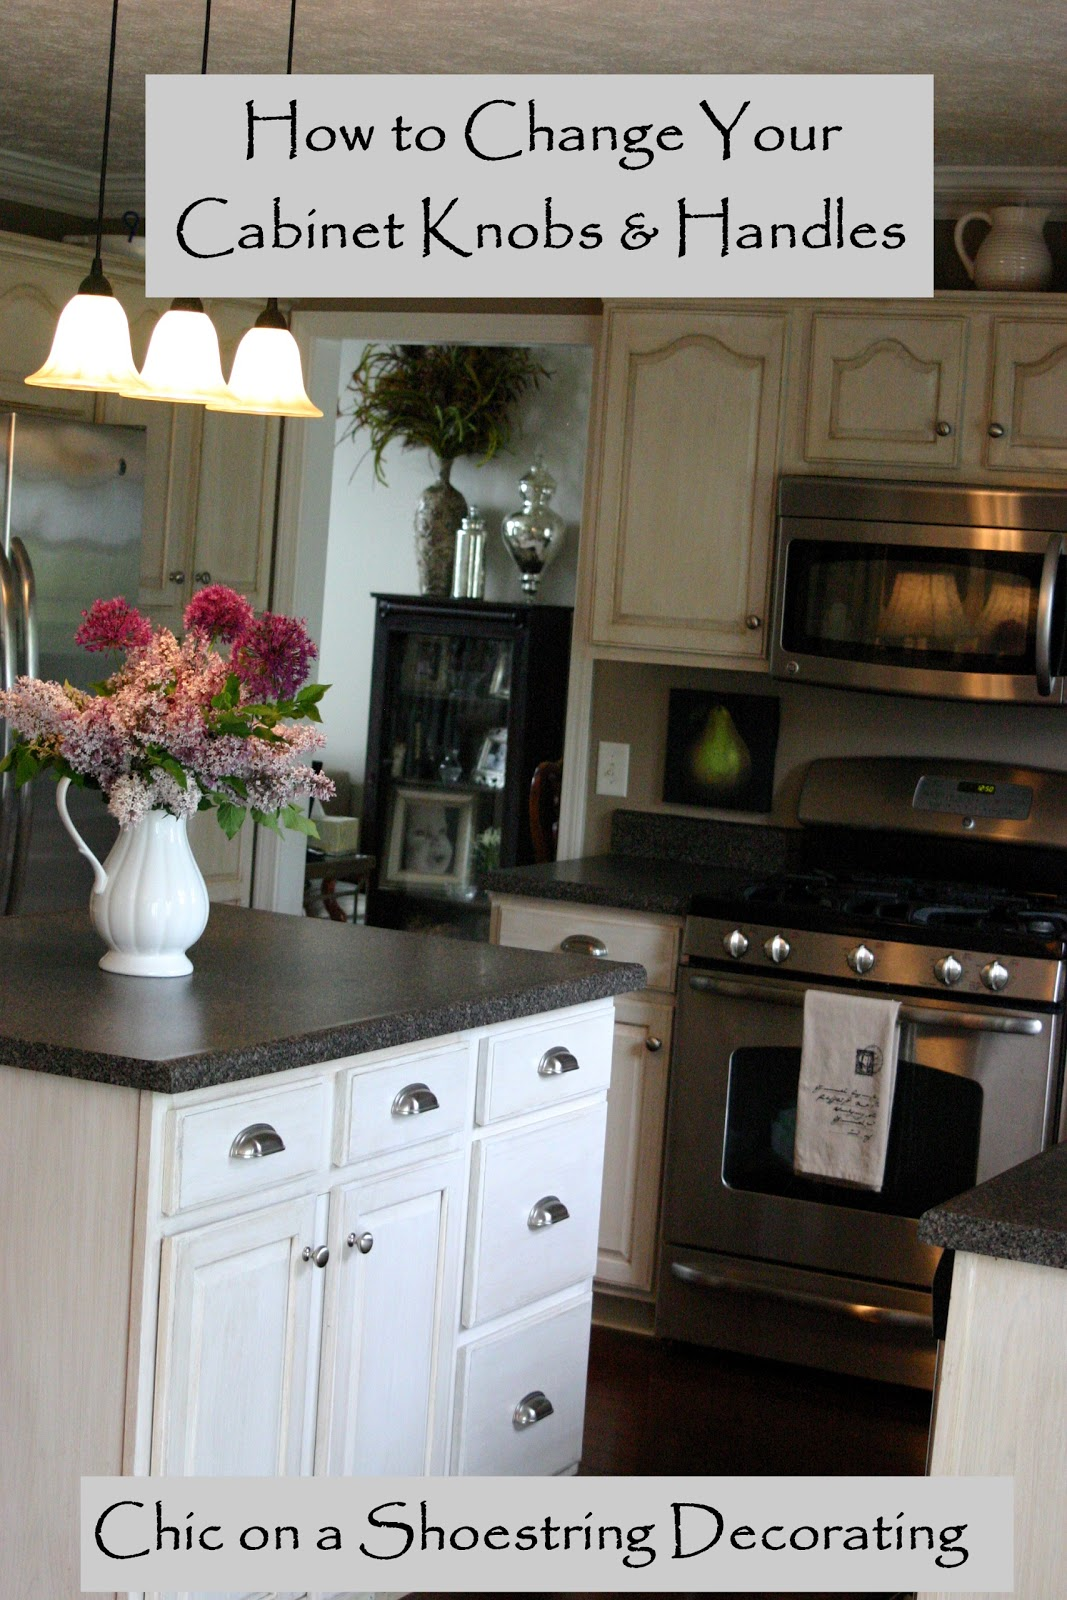 how to change your kitchen cabinet kitchen cabinets handles glazed kitchen cabinets